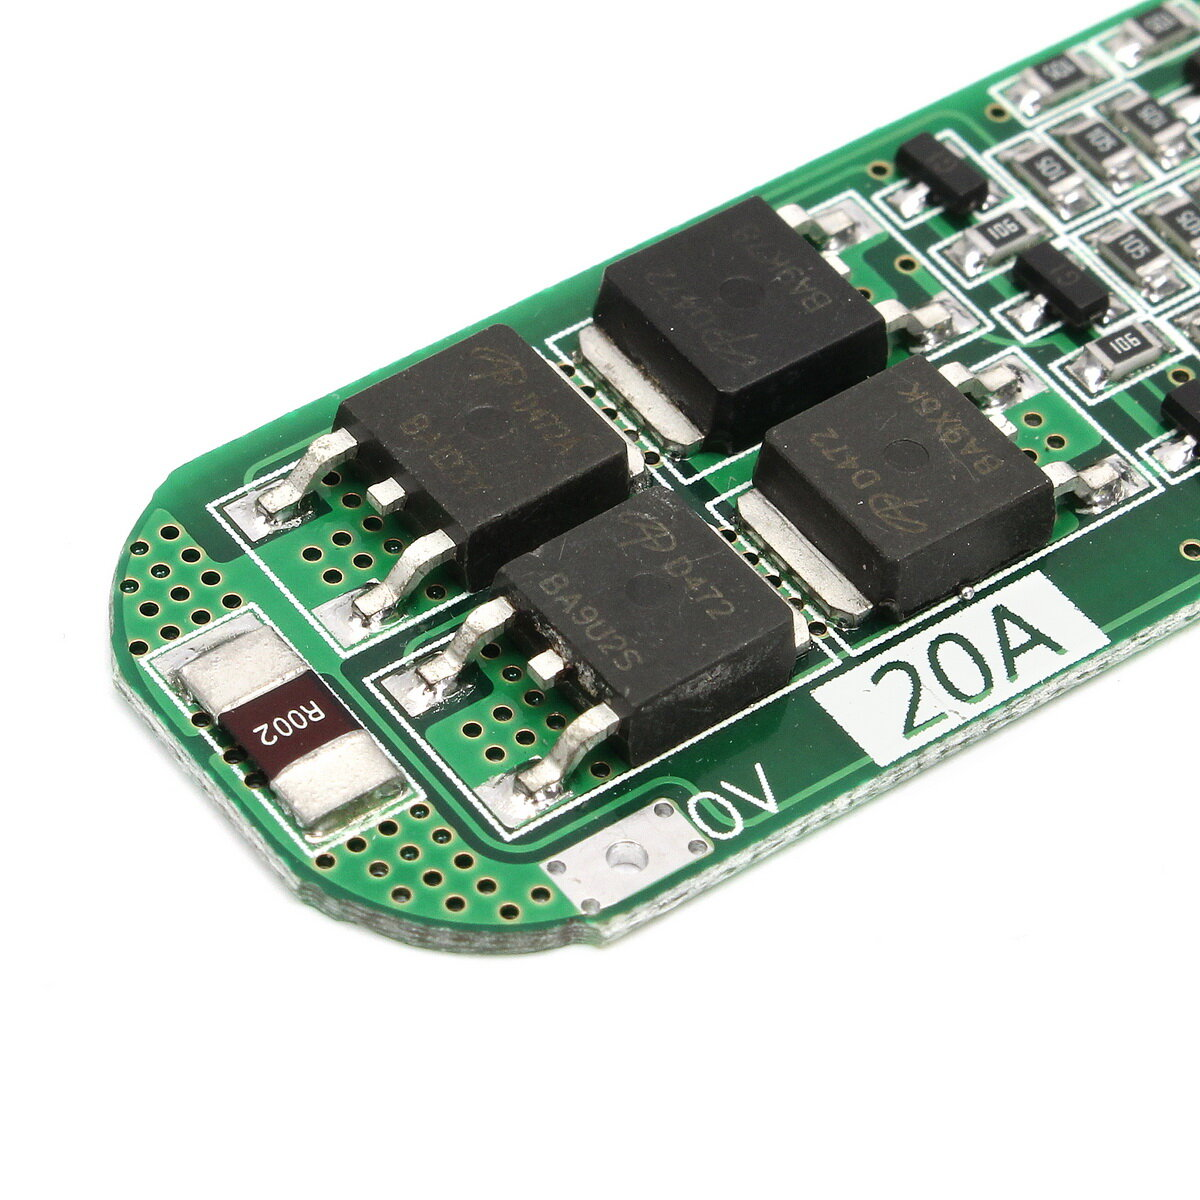 3s 20a Li Ion Lithium Battery 18650 Charger Pcb Bms Protection Board China Design Mobile Circuit Cctv Camera